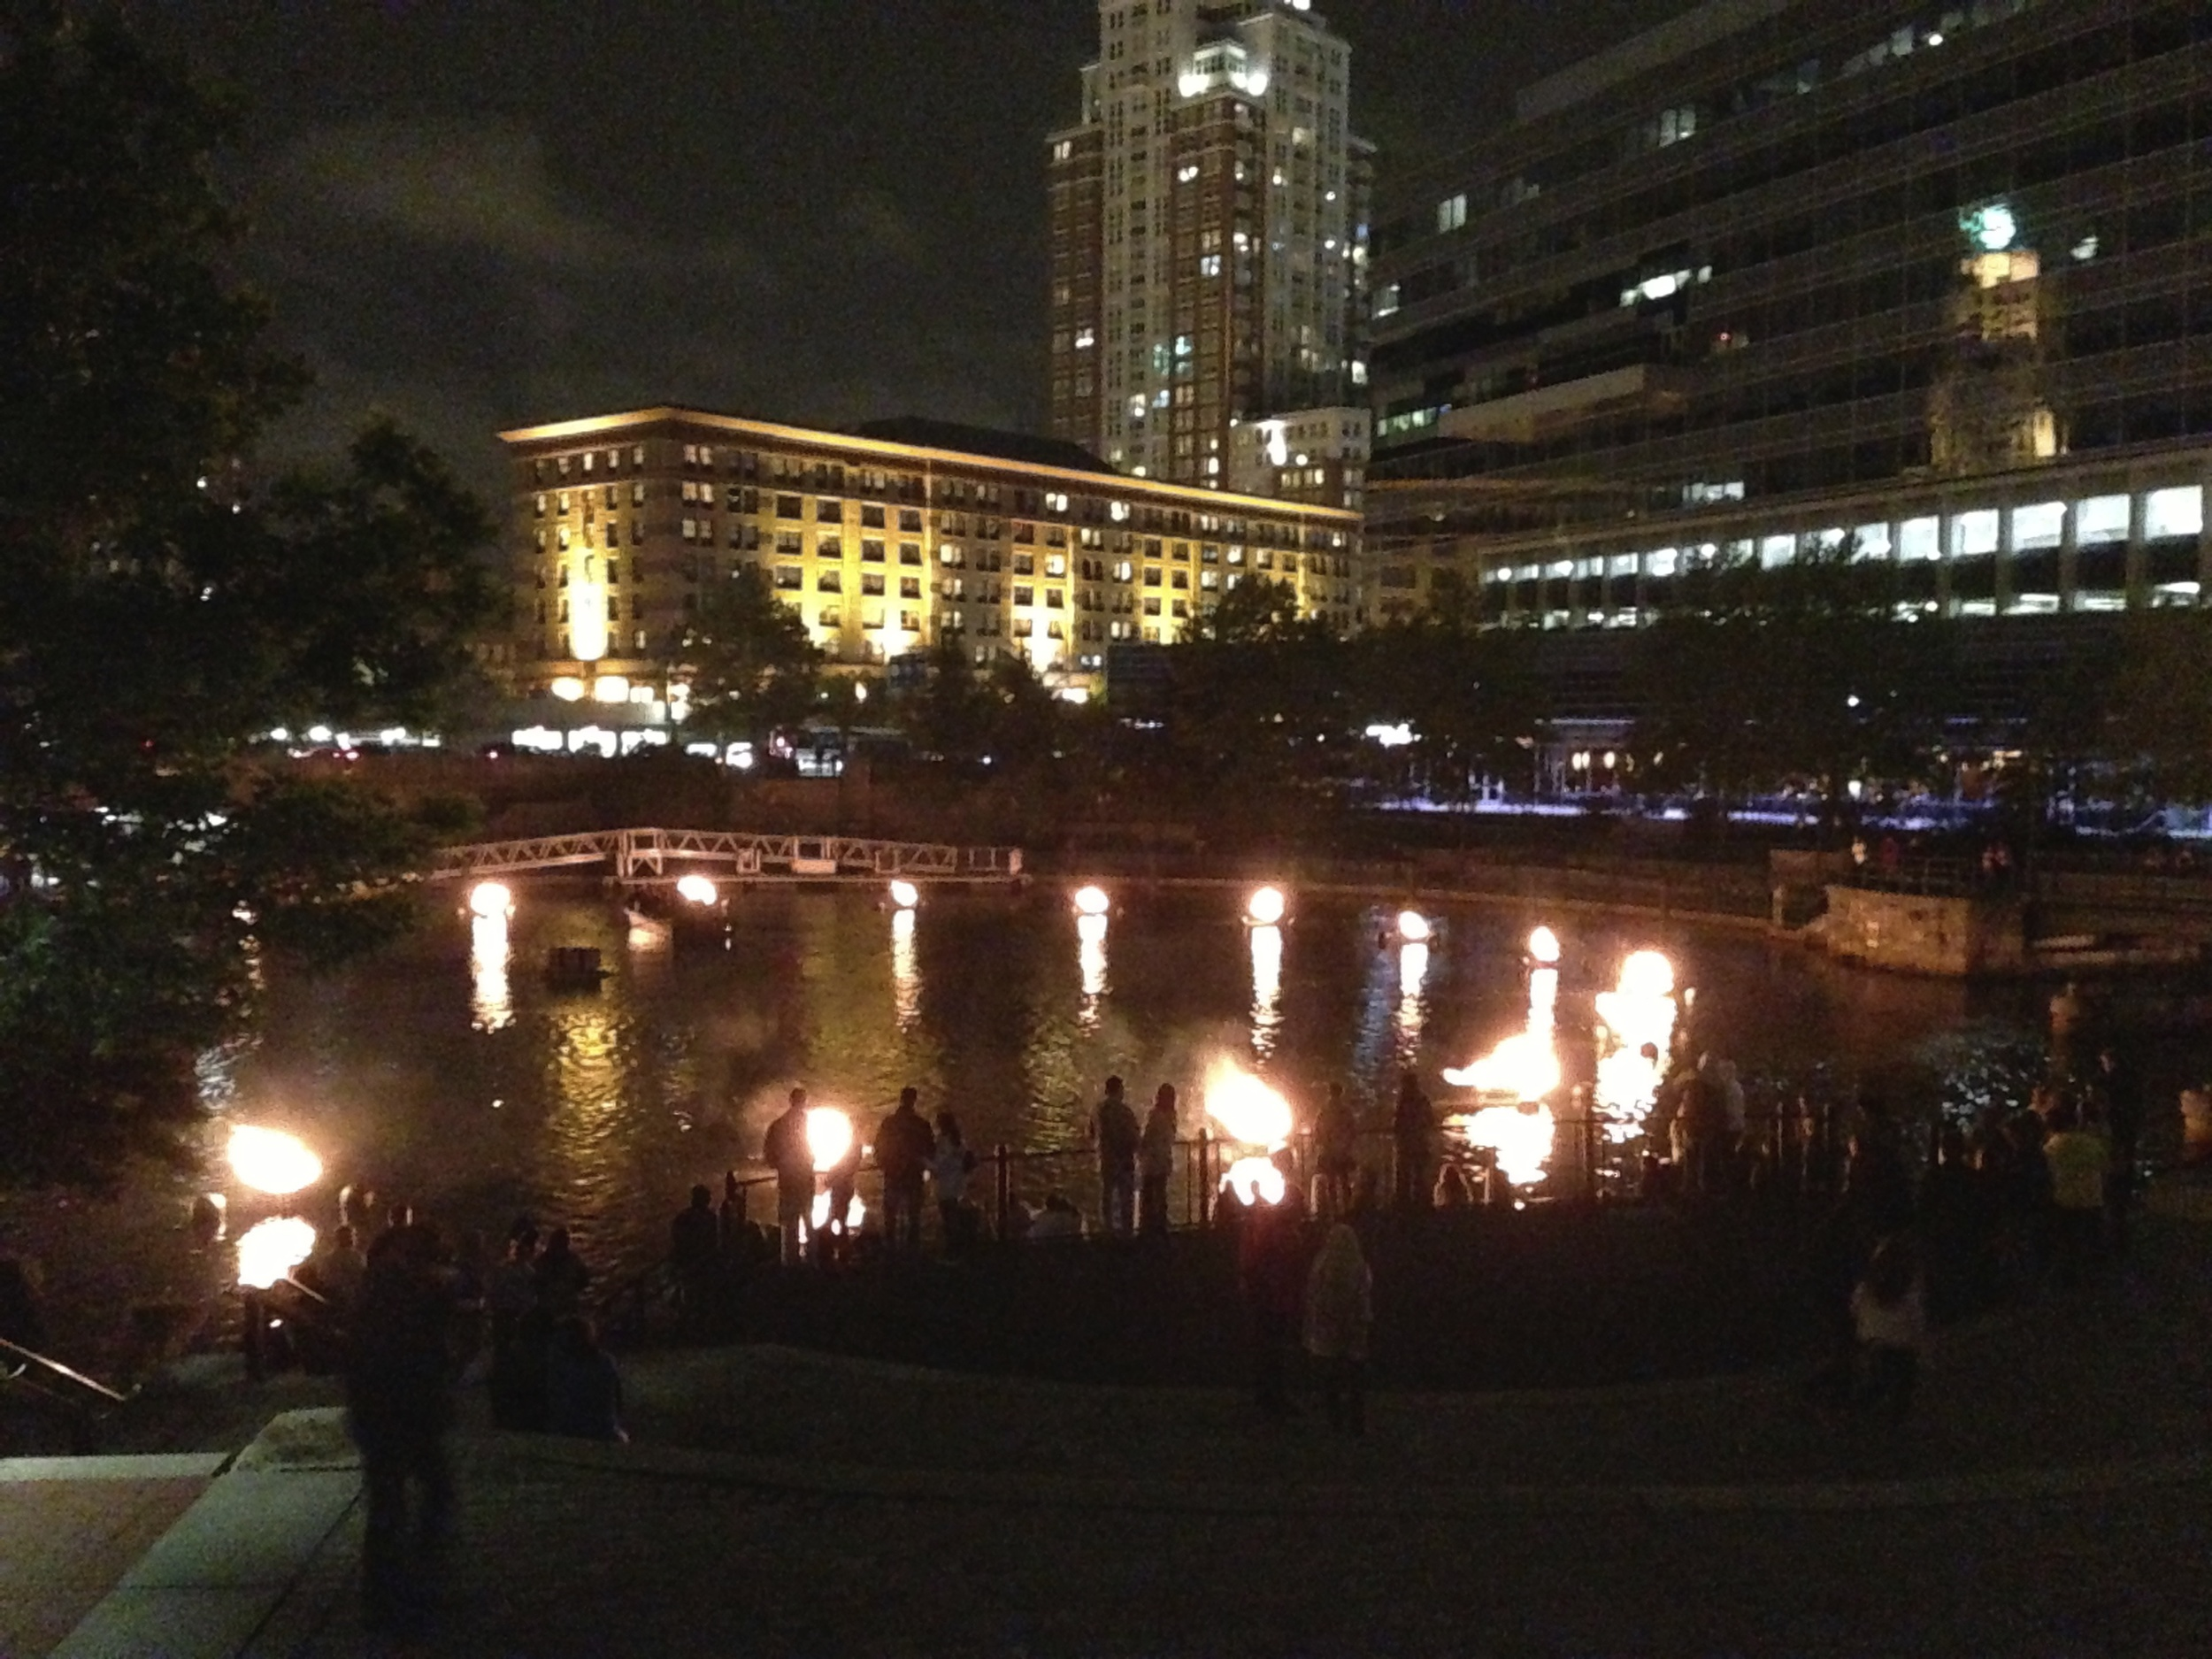 Photo from a typical night at WaterFire